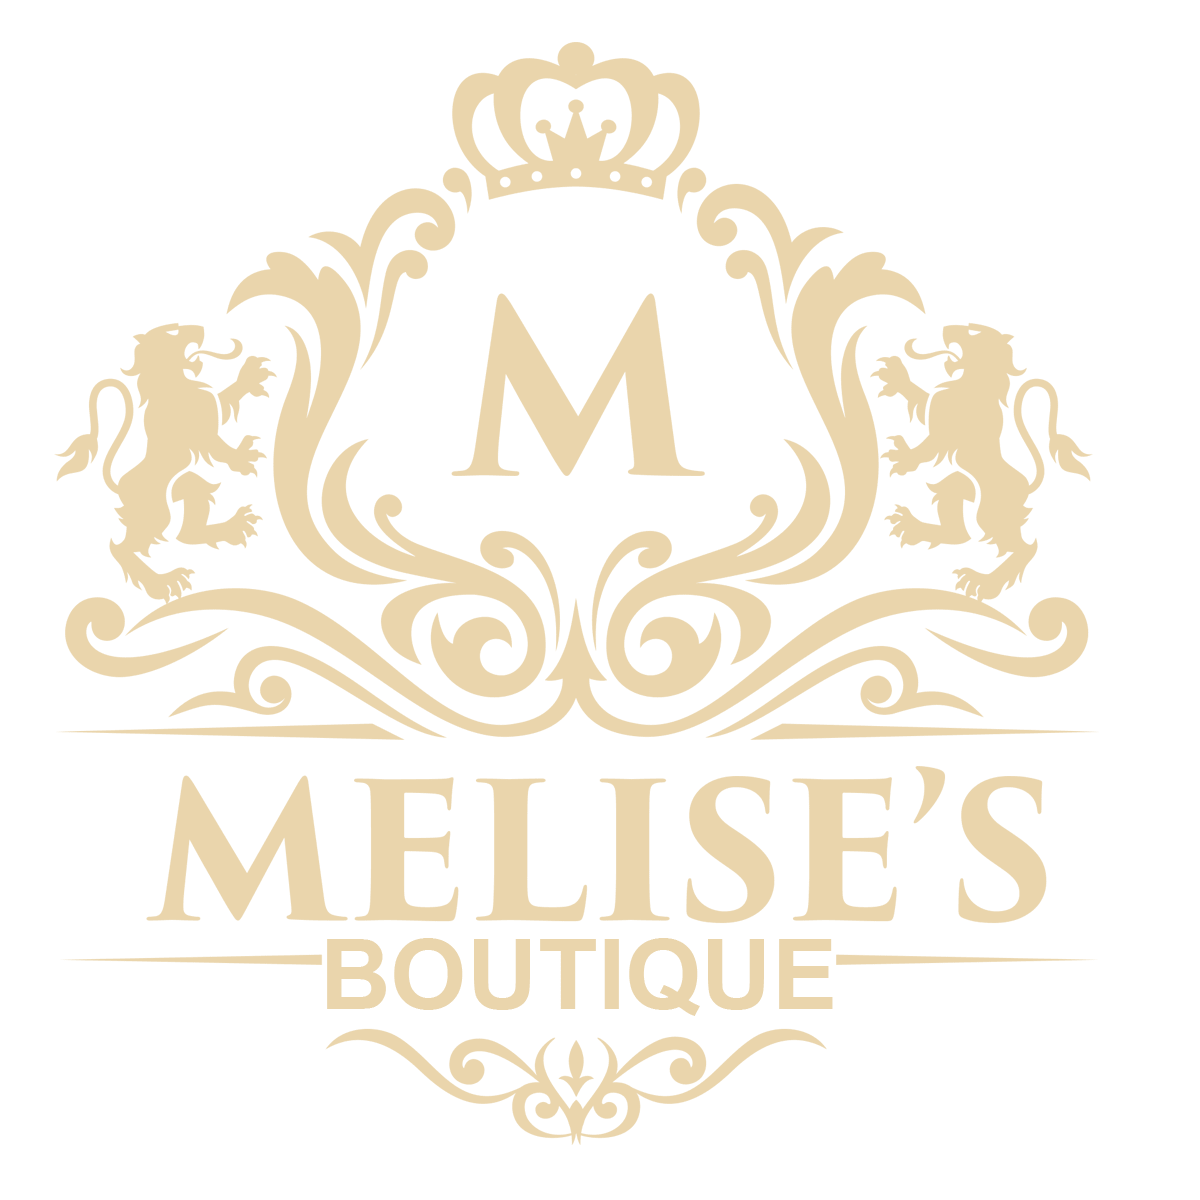 Melise's Boutique